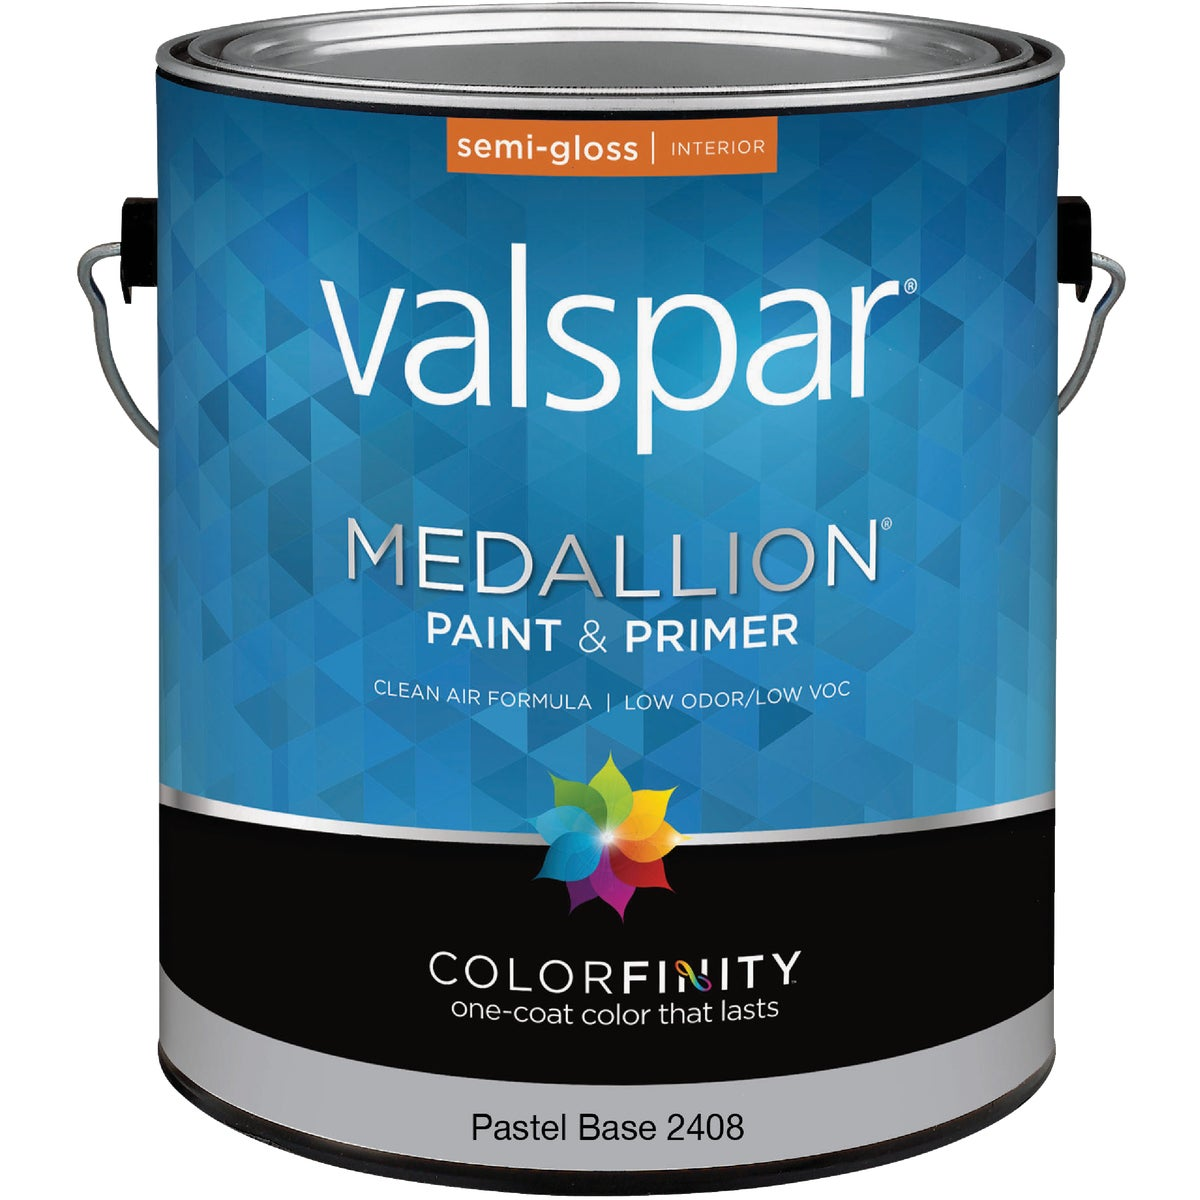 INT S/G PASTEL BS PAINT - 027.0002408.007 by Valspar Corp